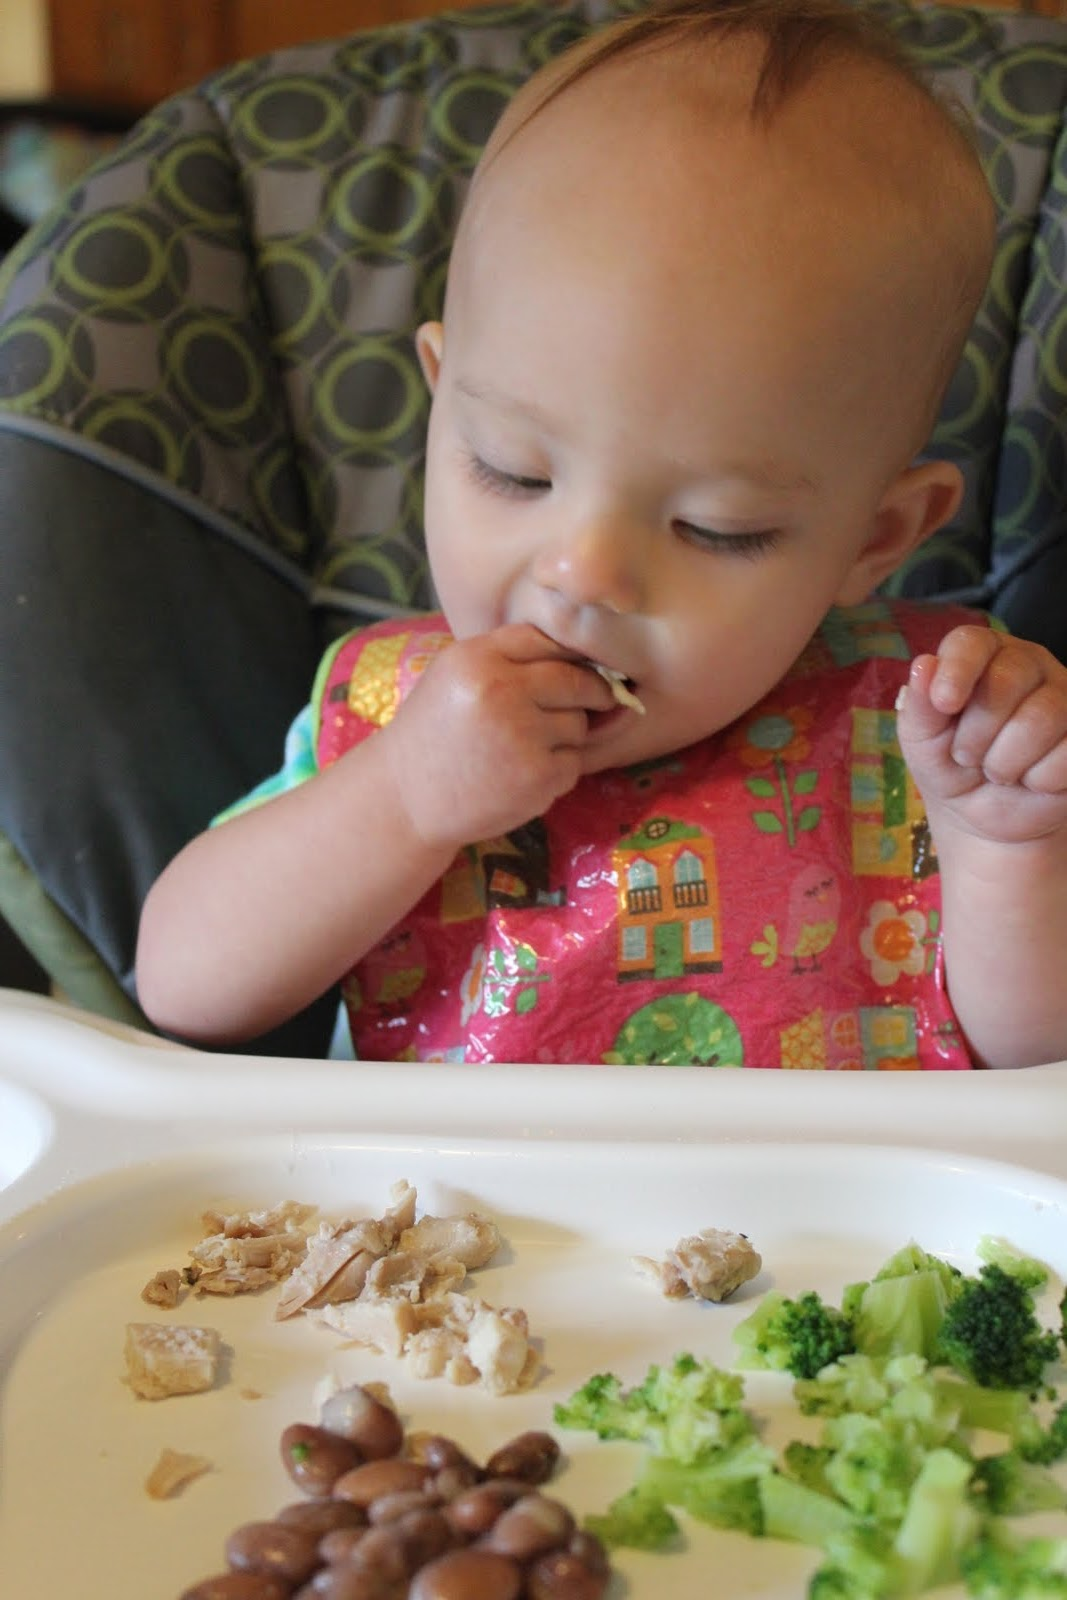 10 Tips For Starting Your Baby On Solid Food The Science